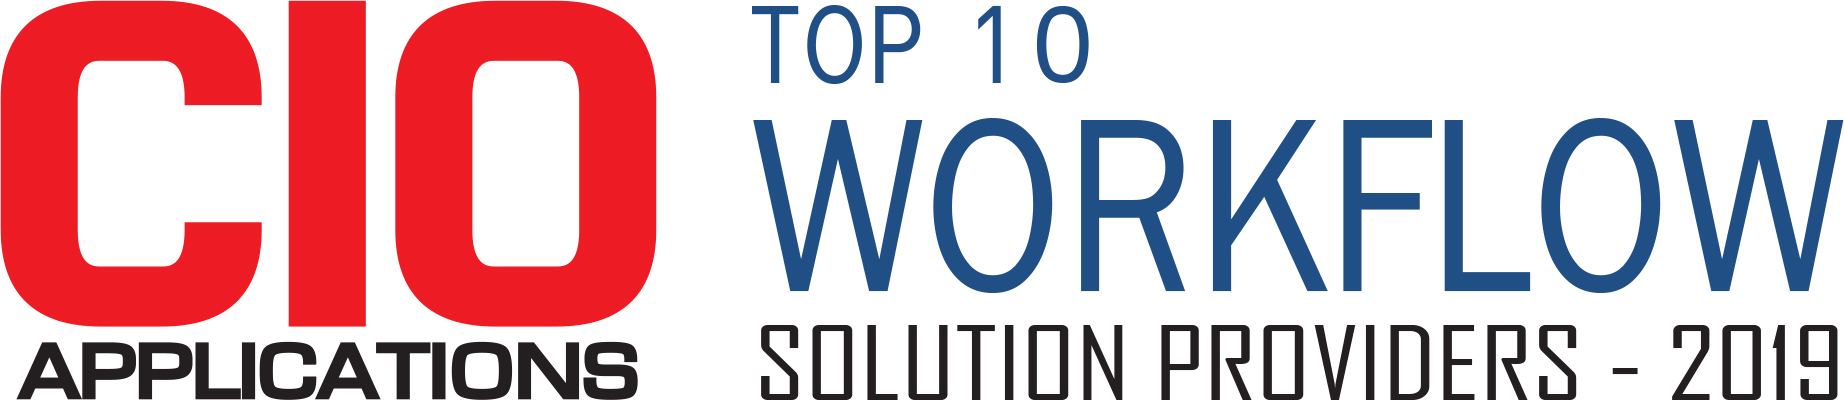 Top Workflow Solution Companies